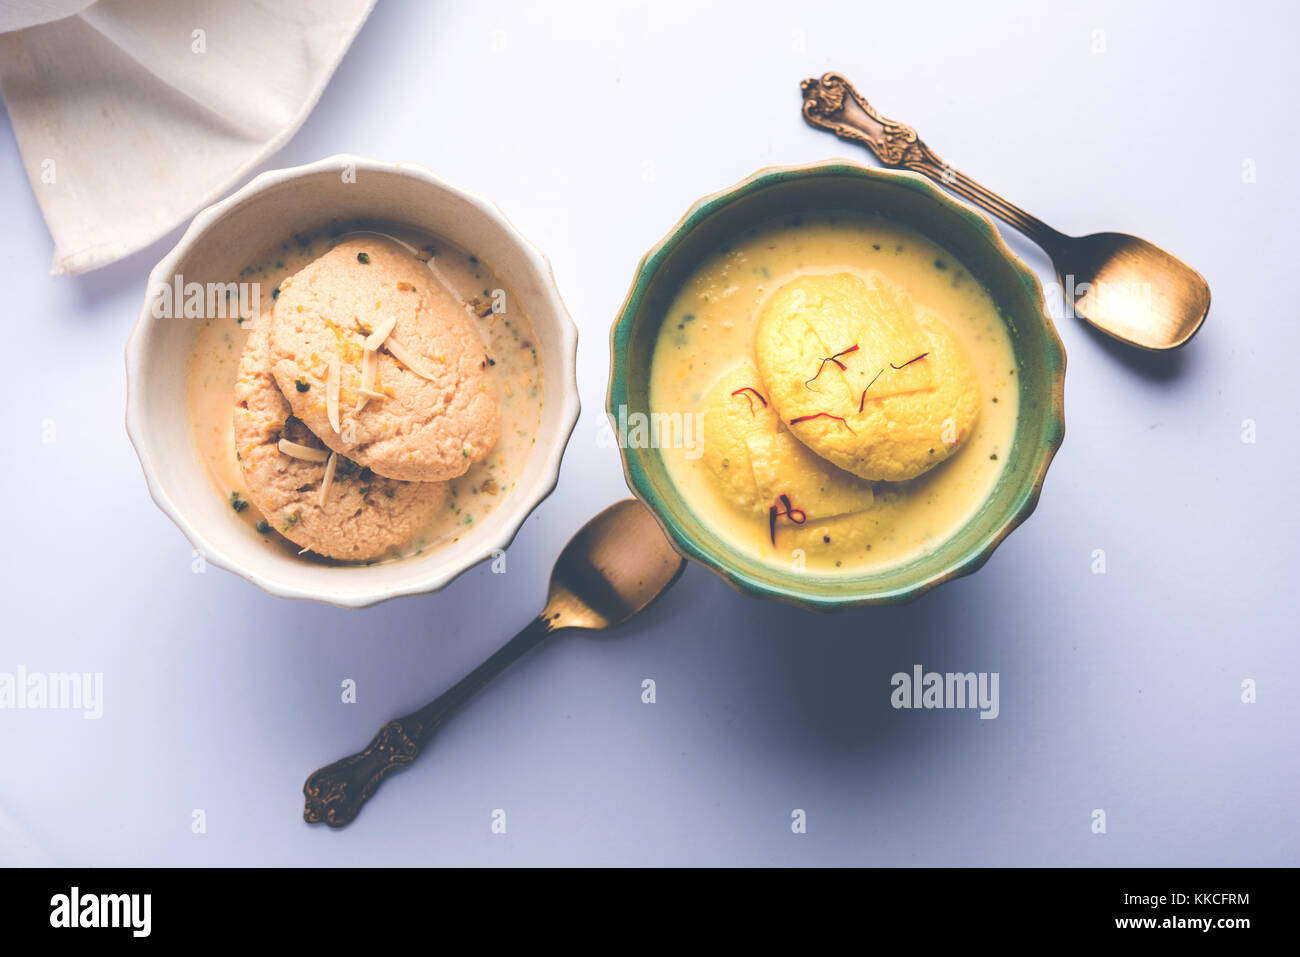 Ras malai or Rasmalai or rossomalai is Indian dessert food made using Jaggery or gur and sugar. It is a rich cheesecake - Stock Image